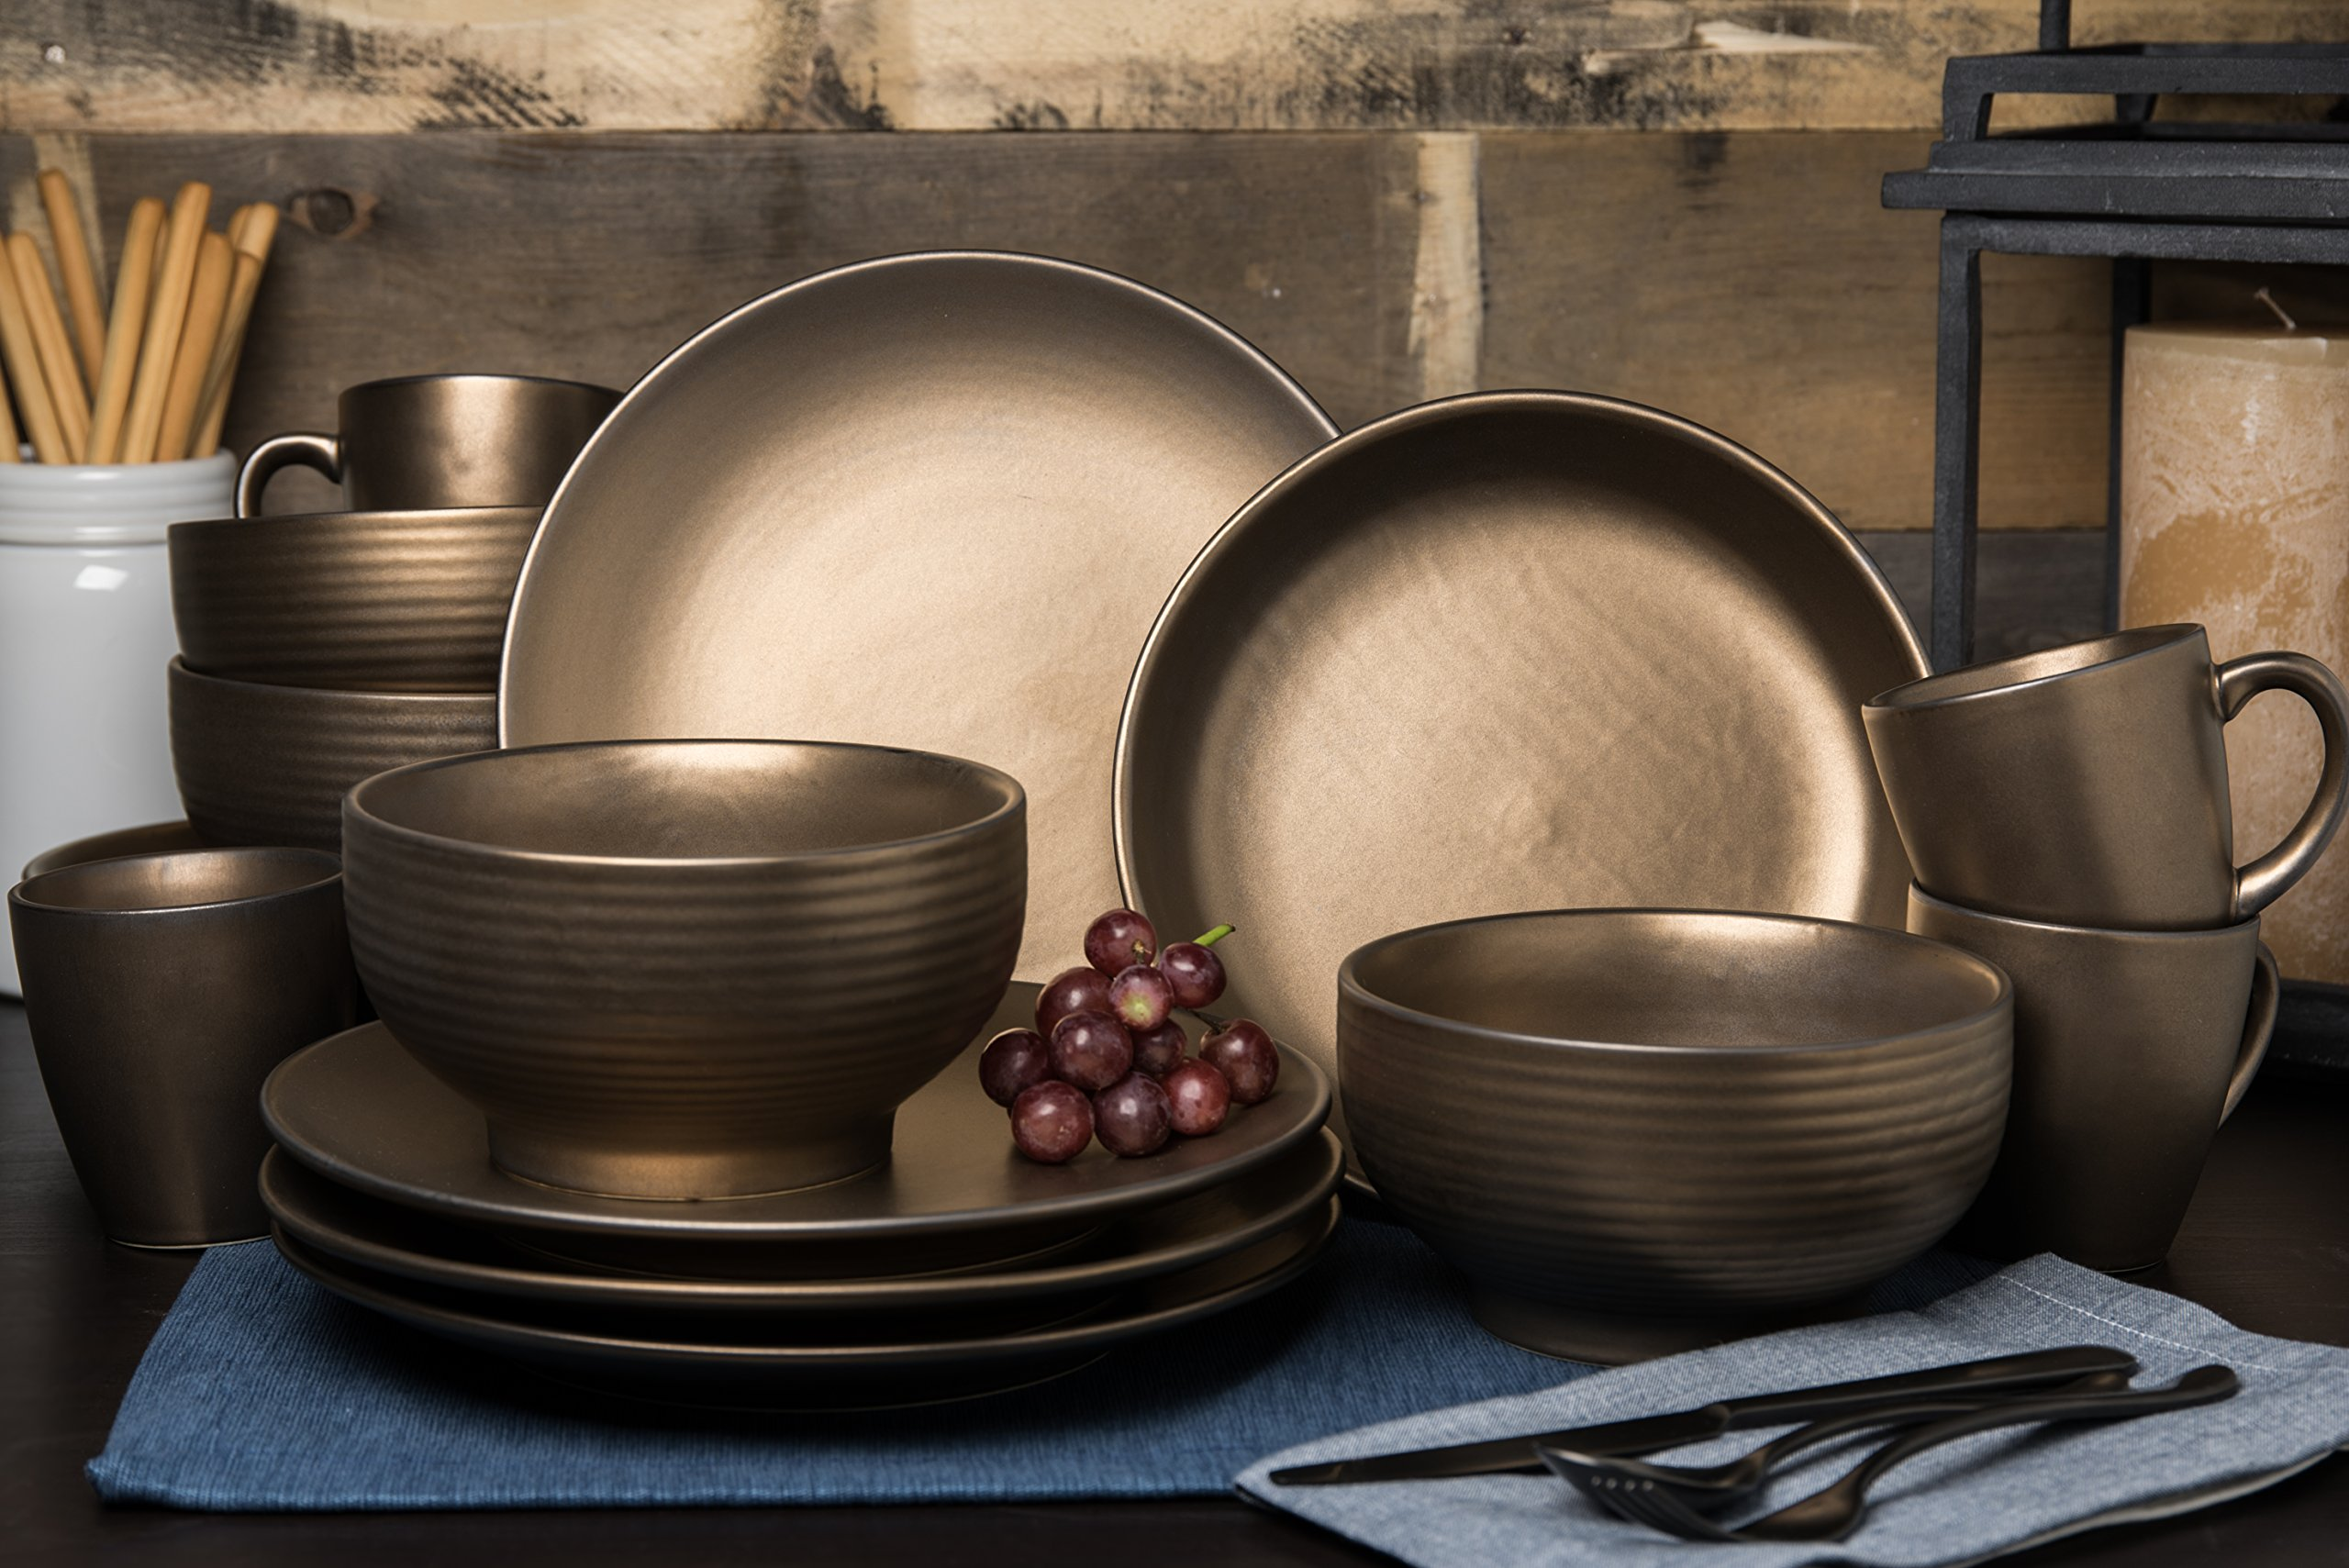 Tablescapes ME52957-16PC 16 Piece Teton Dinnerware Set, Rubbed Gold by Tablescapes (Image #2)